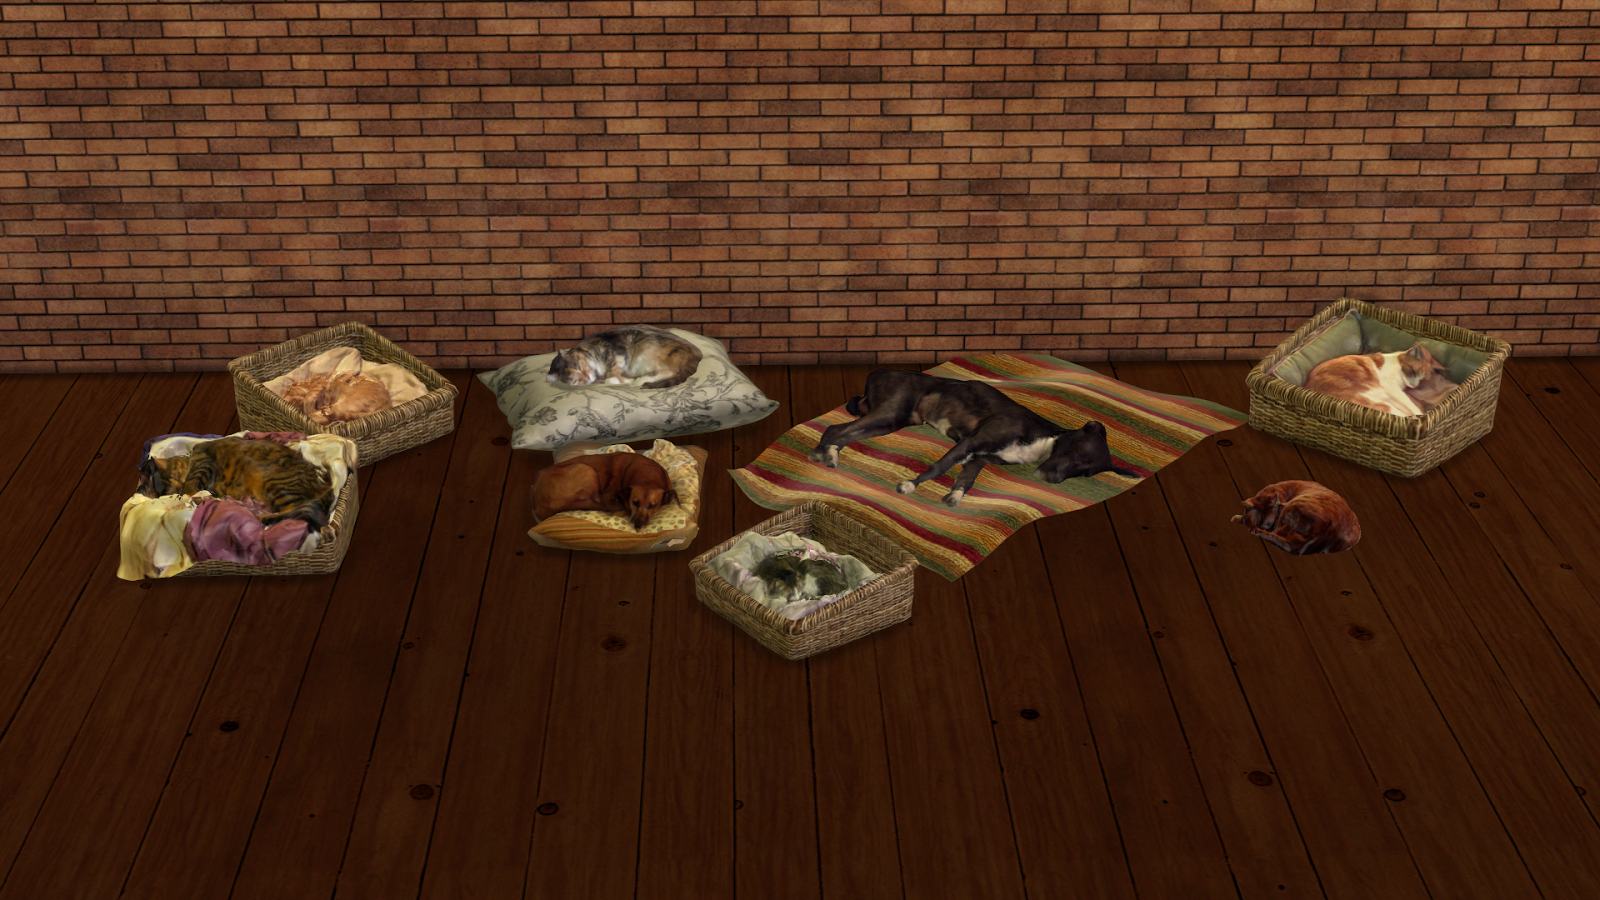 Sleeping Cats and Dogs Decor by Leo4Sims